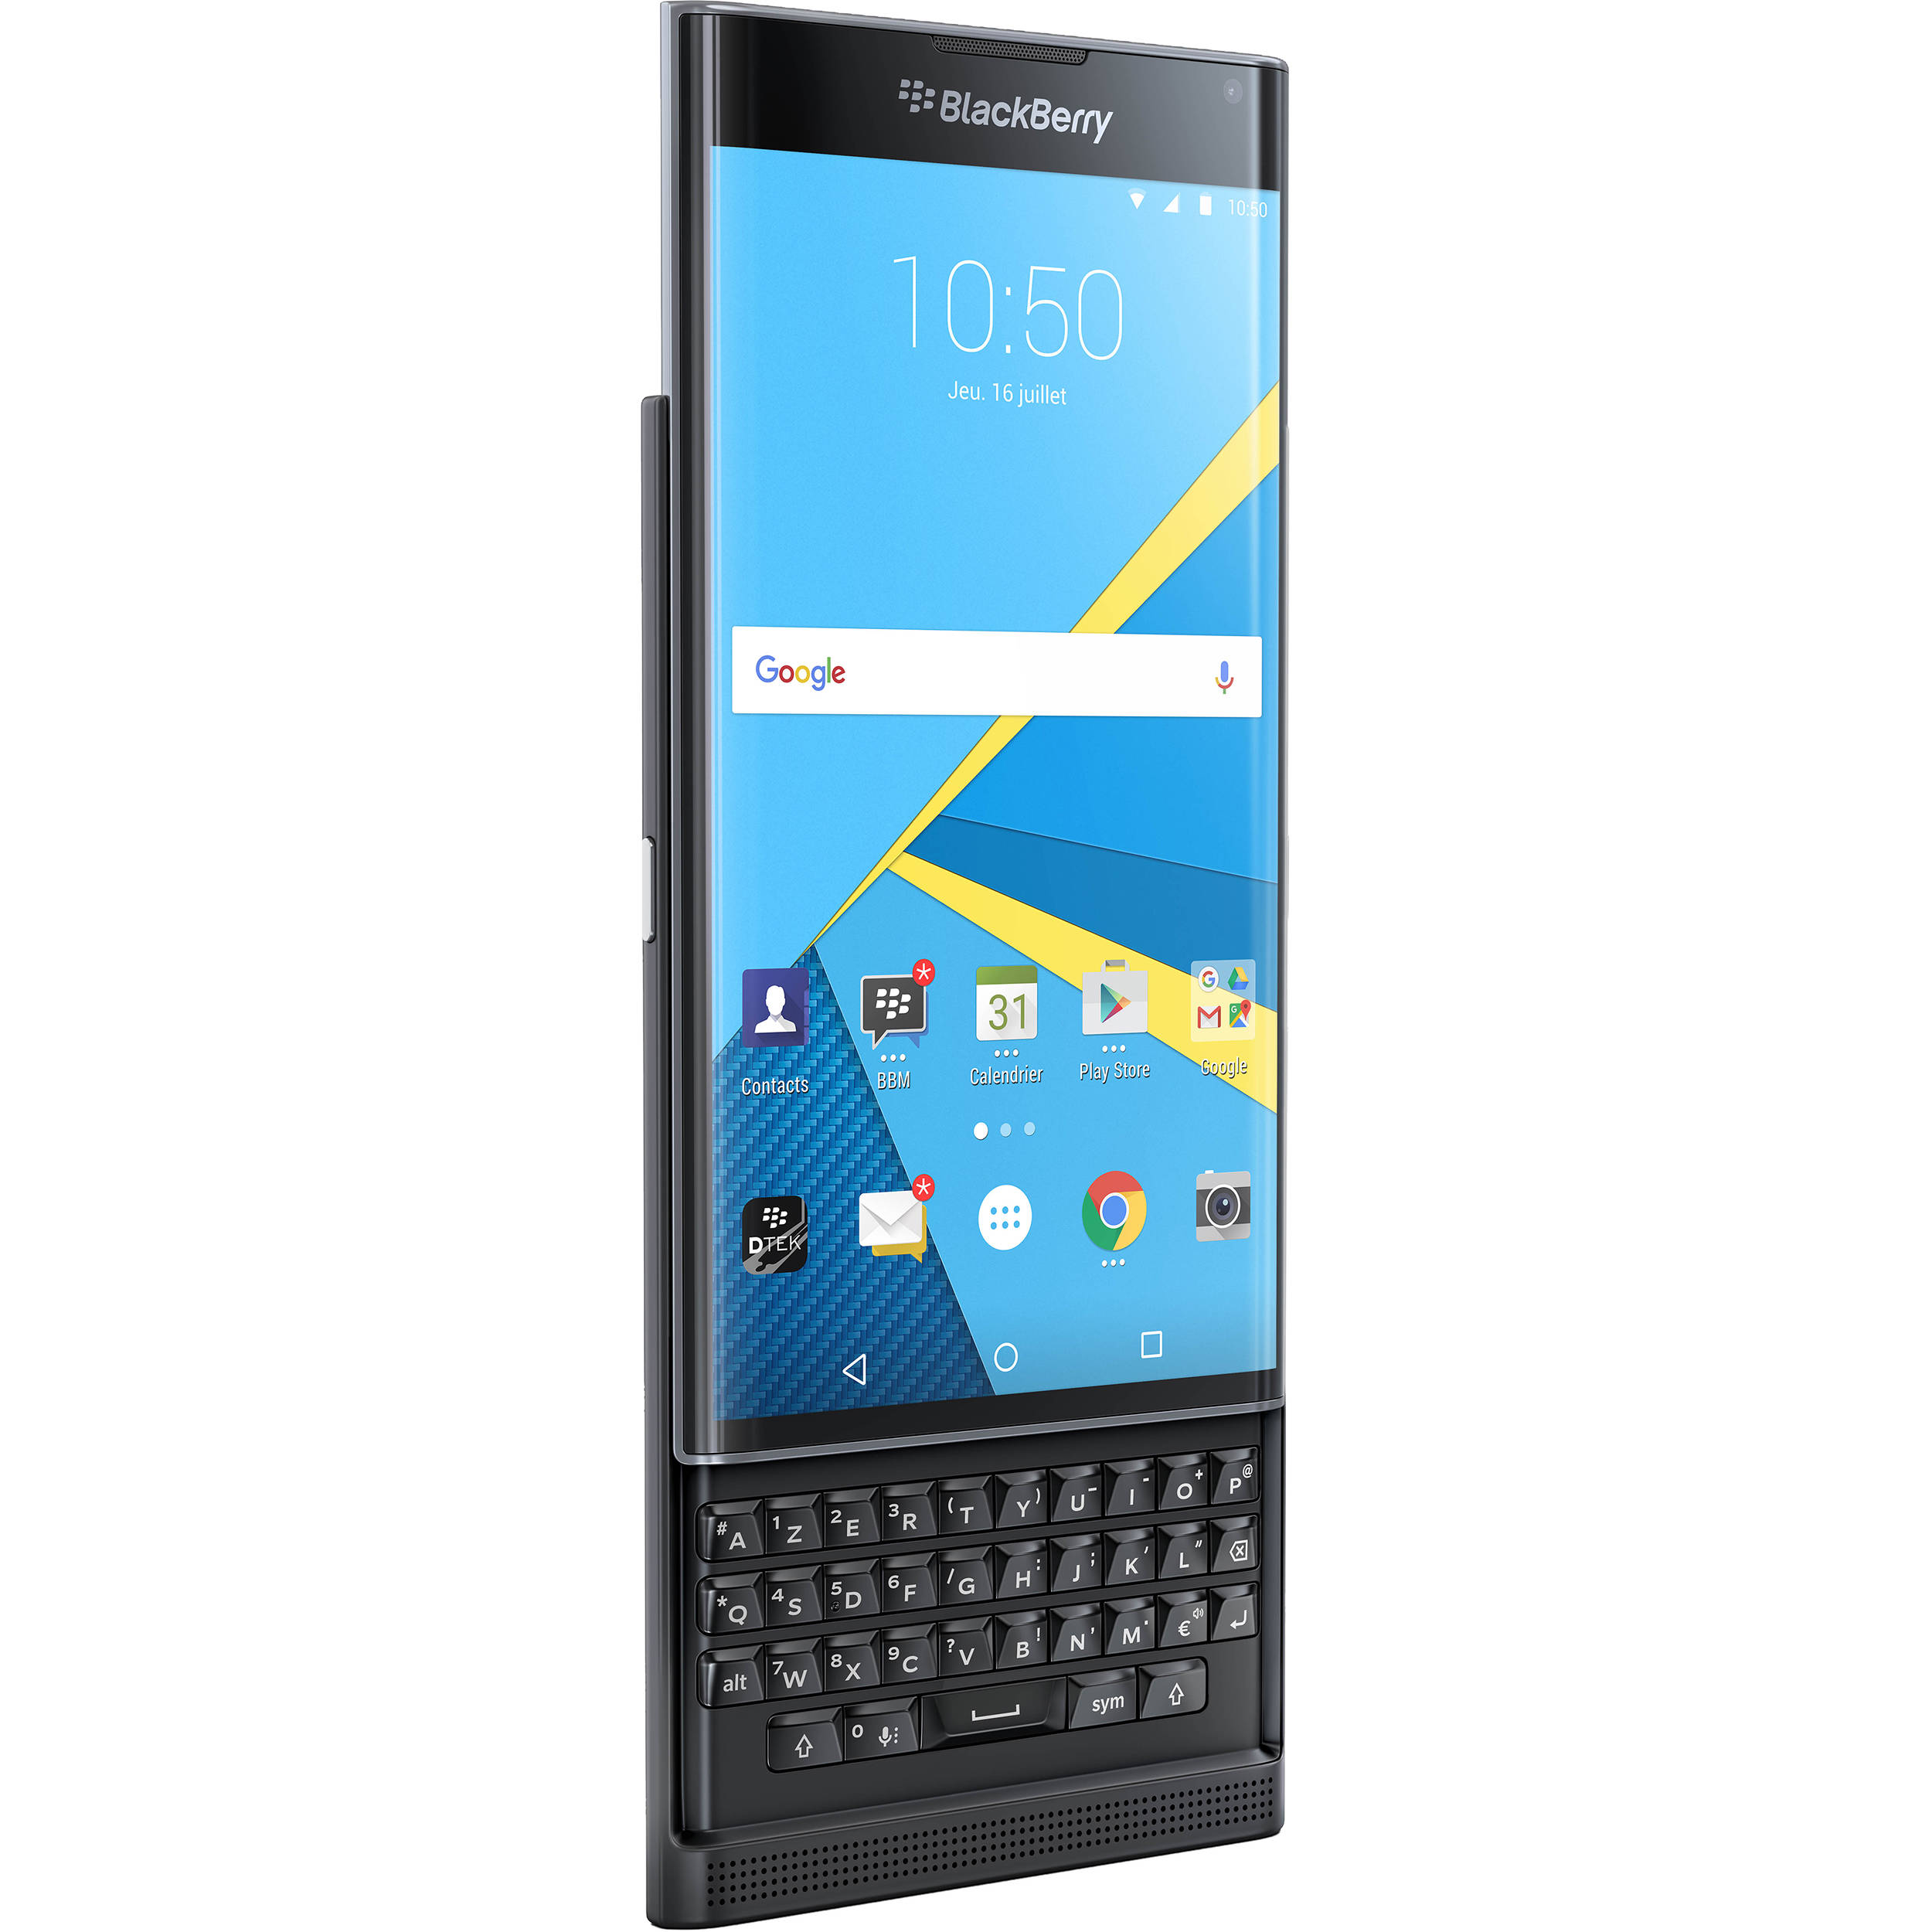 Phone Blackberry Android Phones List priv blackberry 32gb smartphone unlocked black stv100 1 bh black